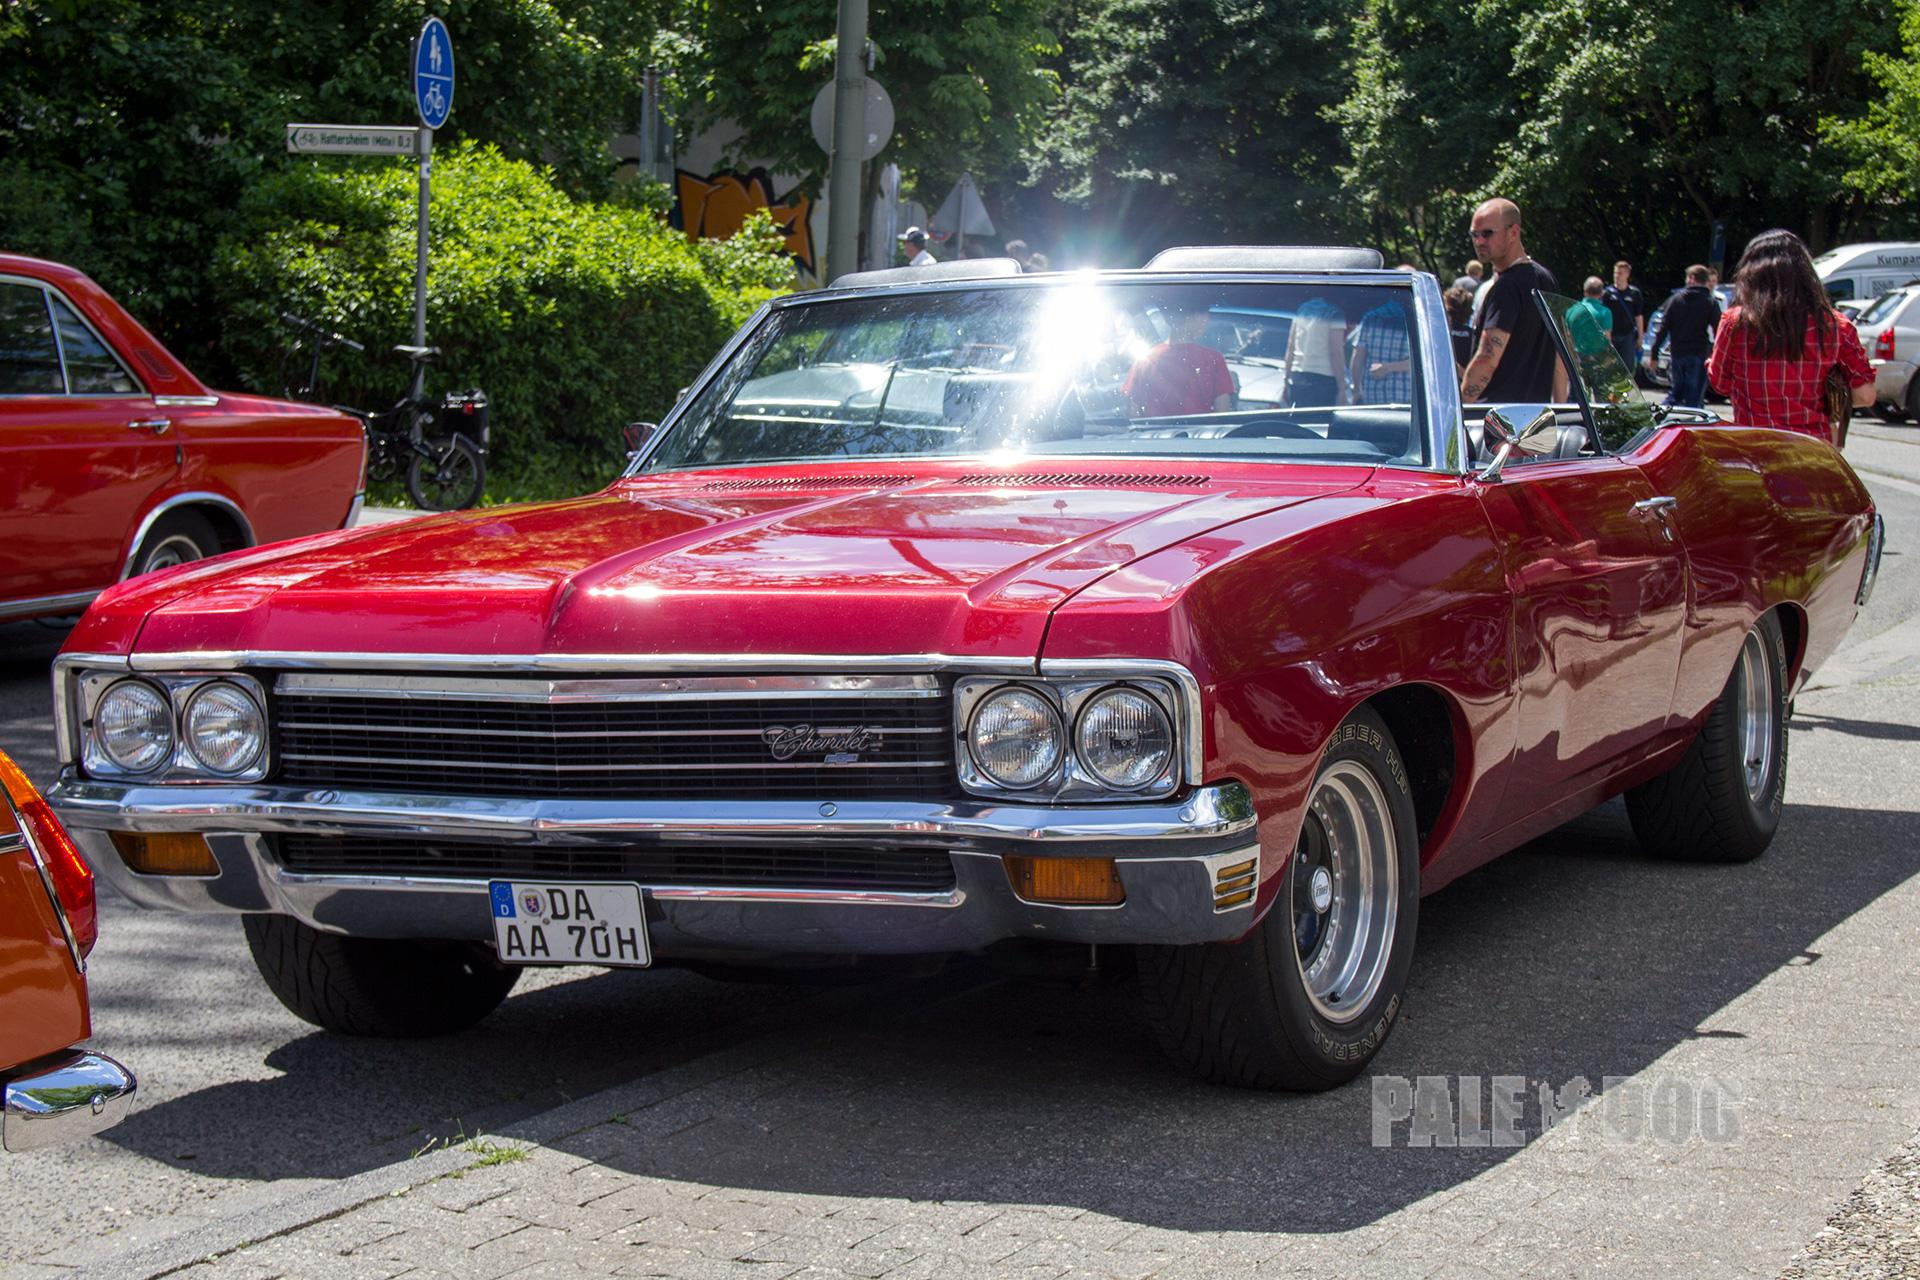 1970 Chevrolet Impala Convertible Front View 1960s